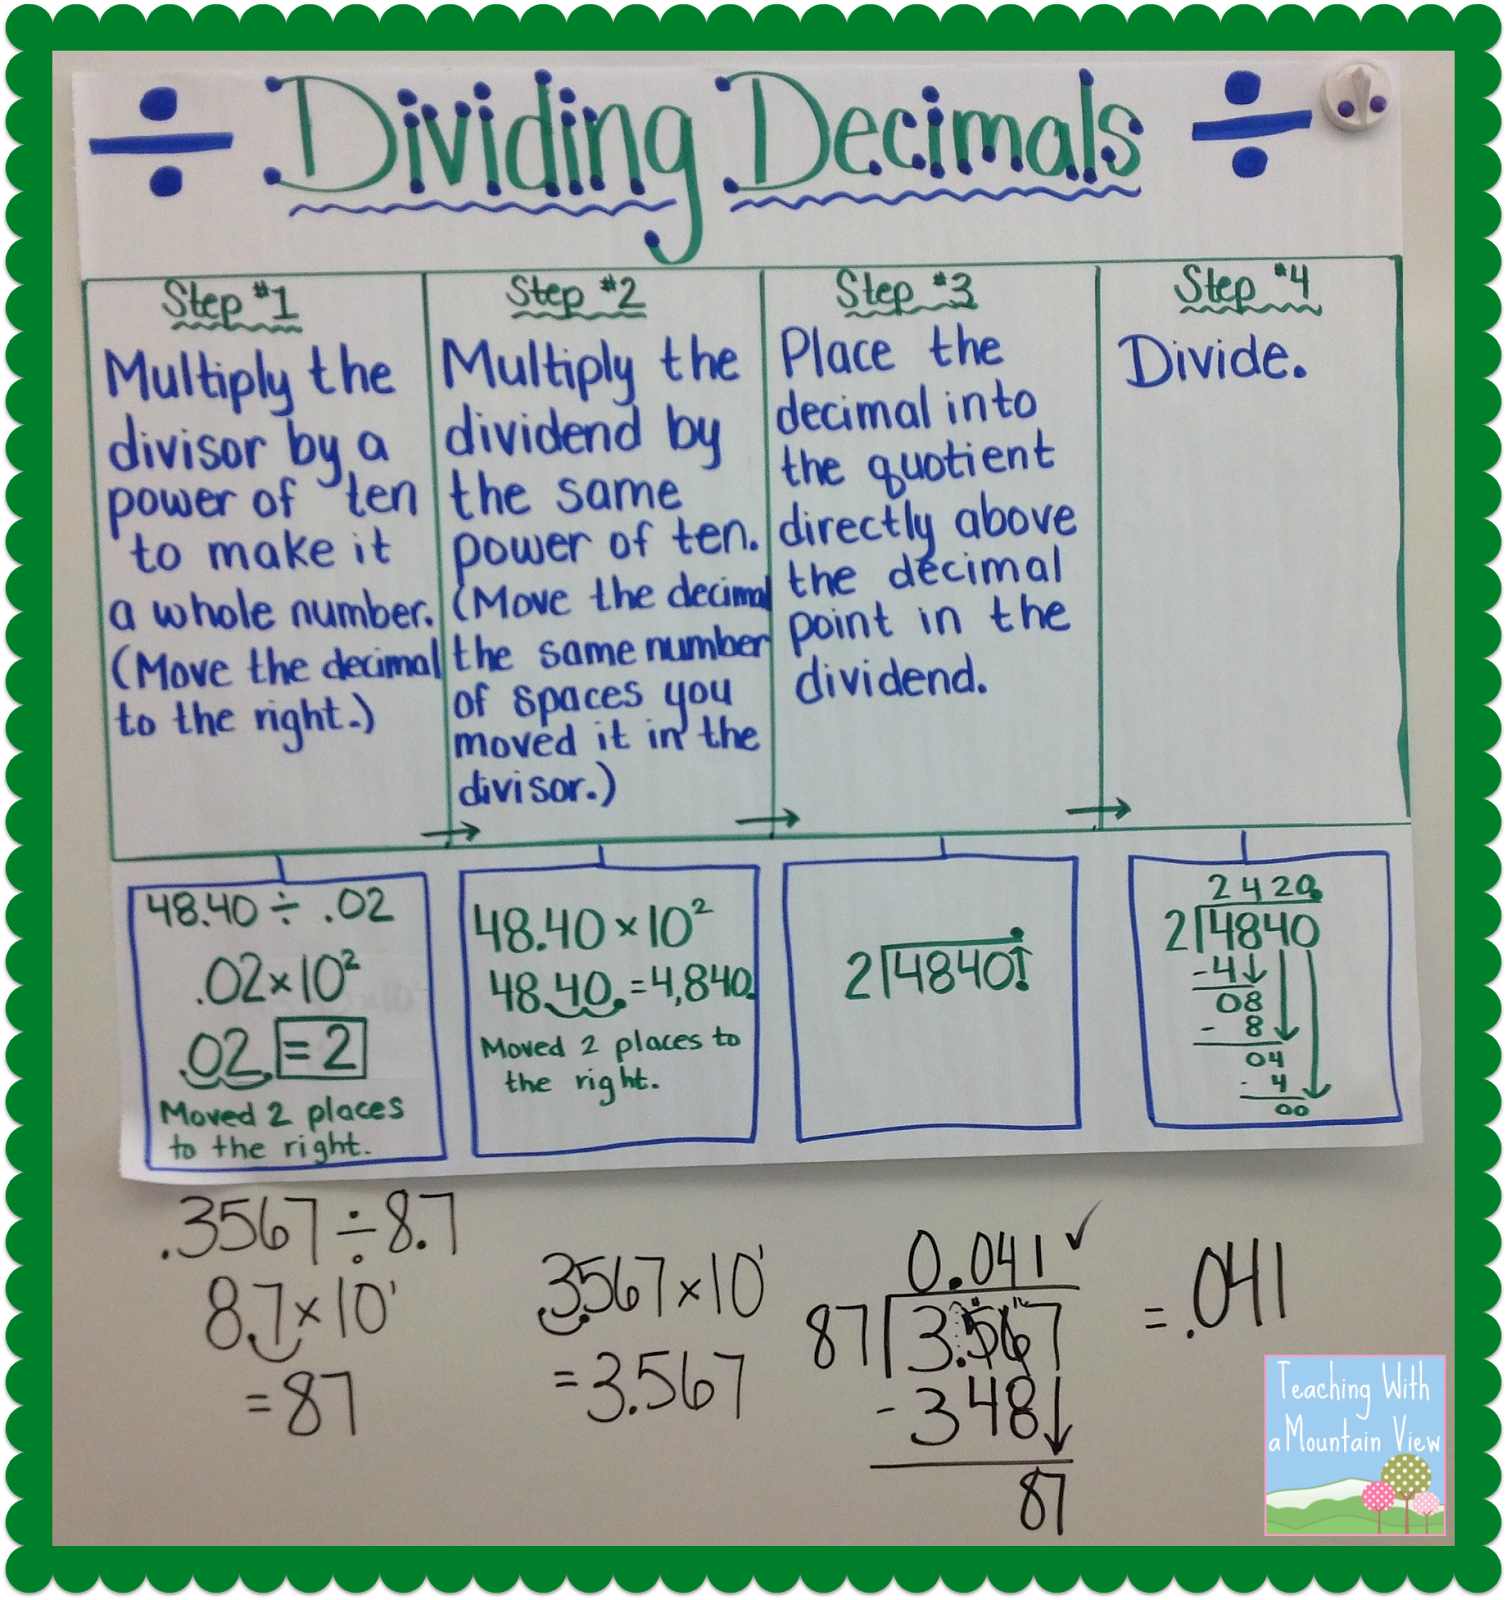 teaching with a mountain view: dividing decimals anchor charts